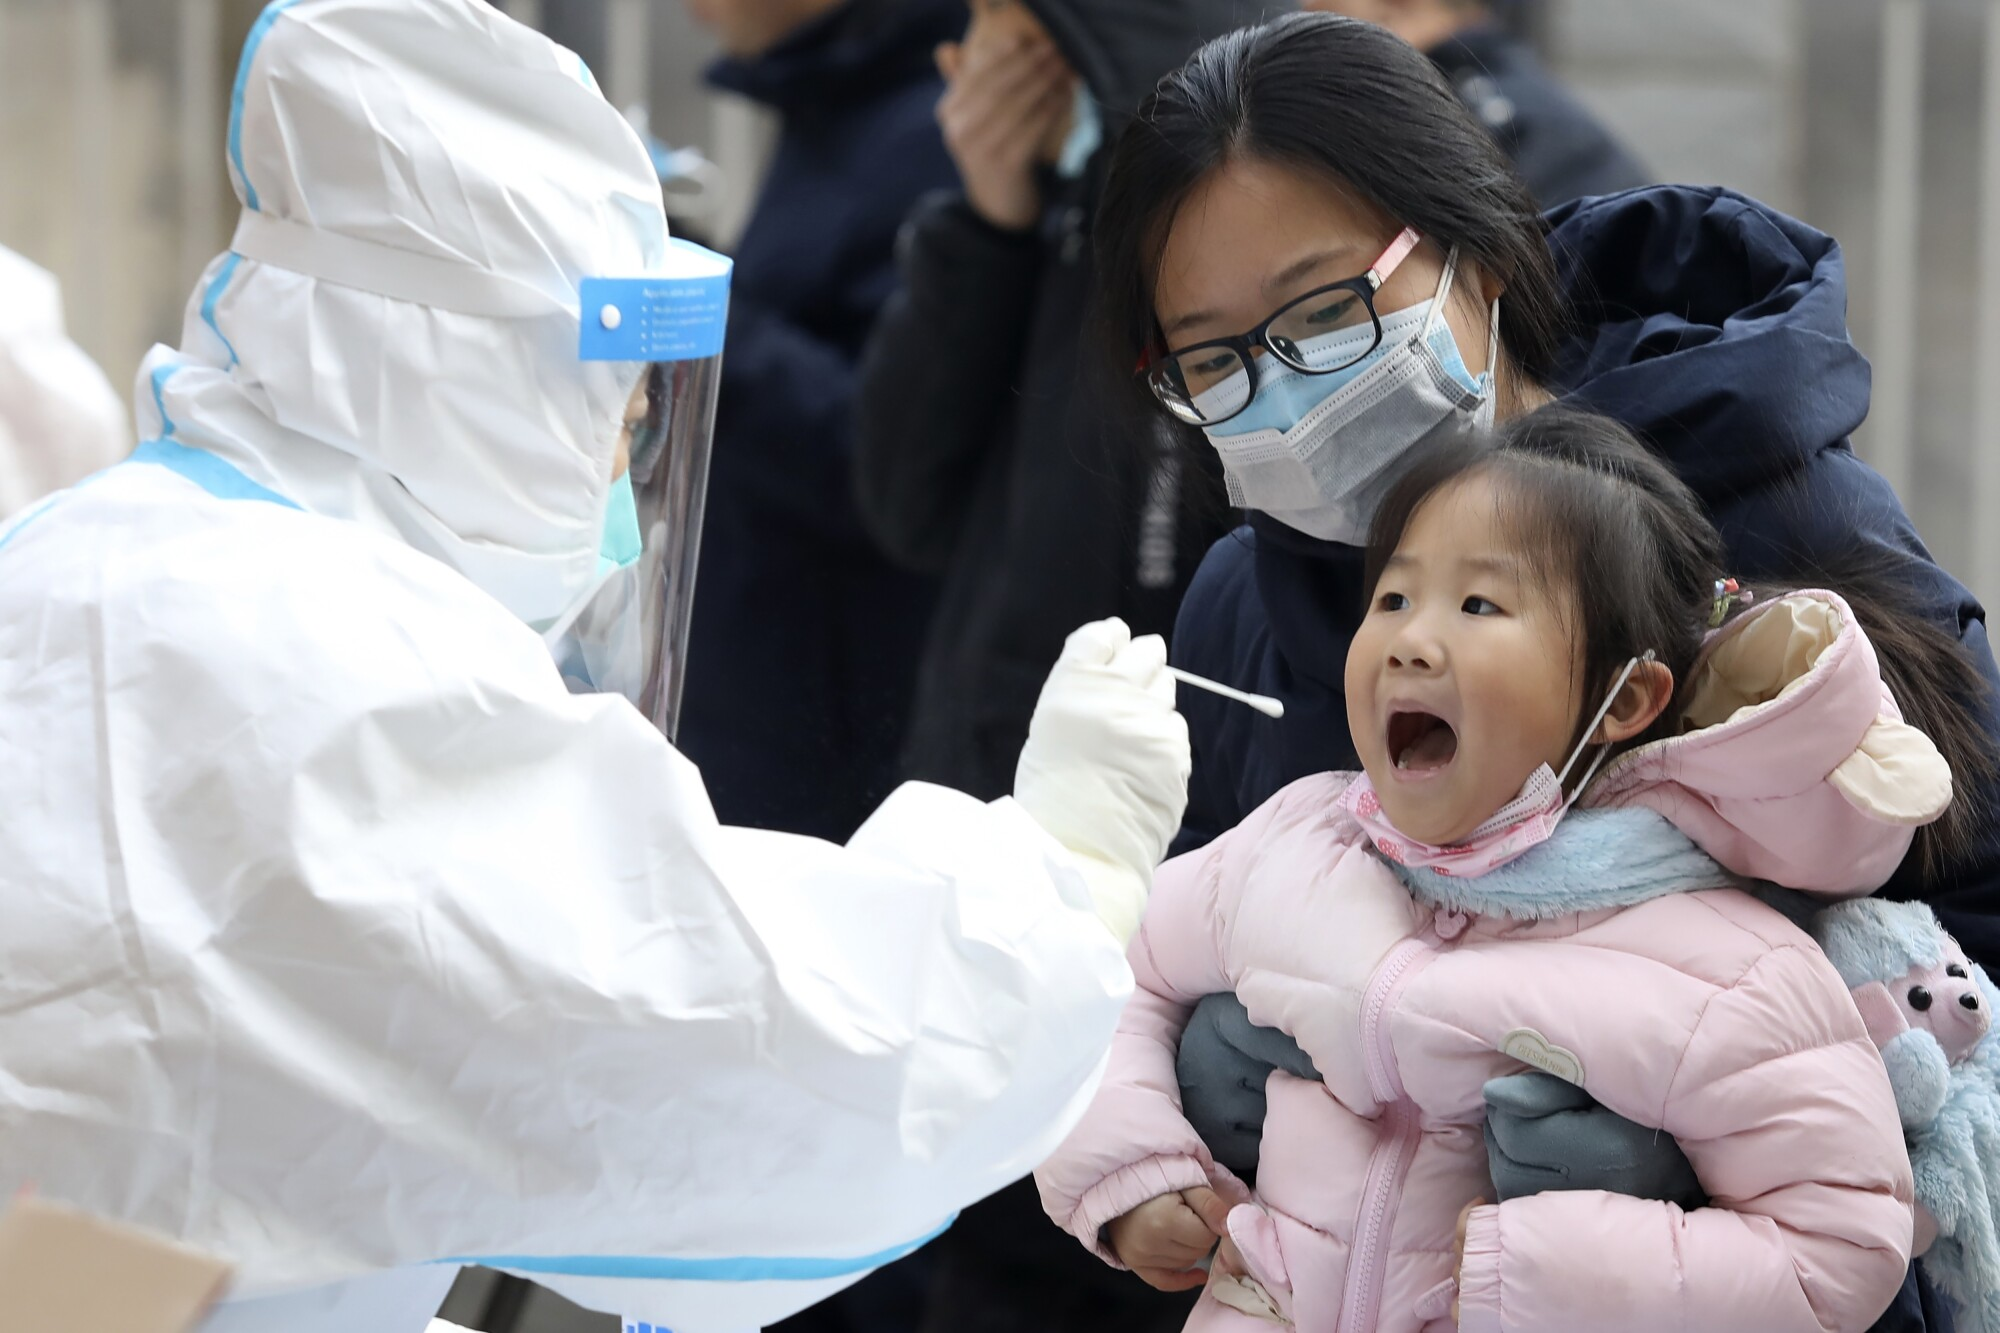 A worker in a protective suit takes a swab from a child for a coronavirus test in Shijiazhuang, in northern China.